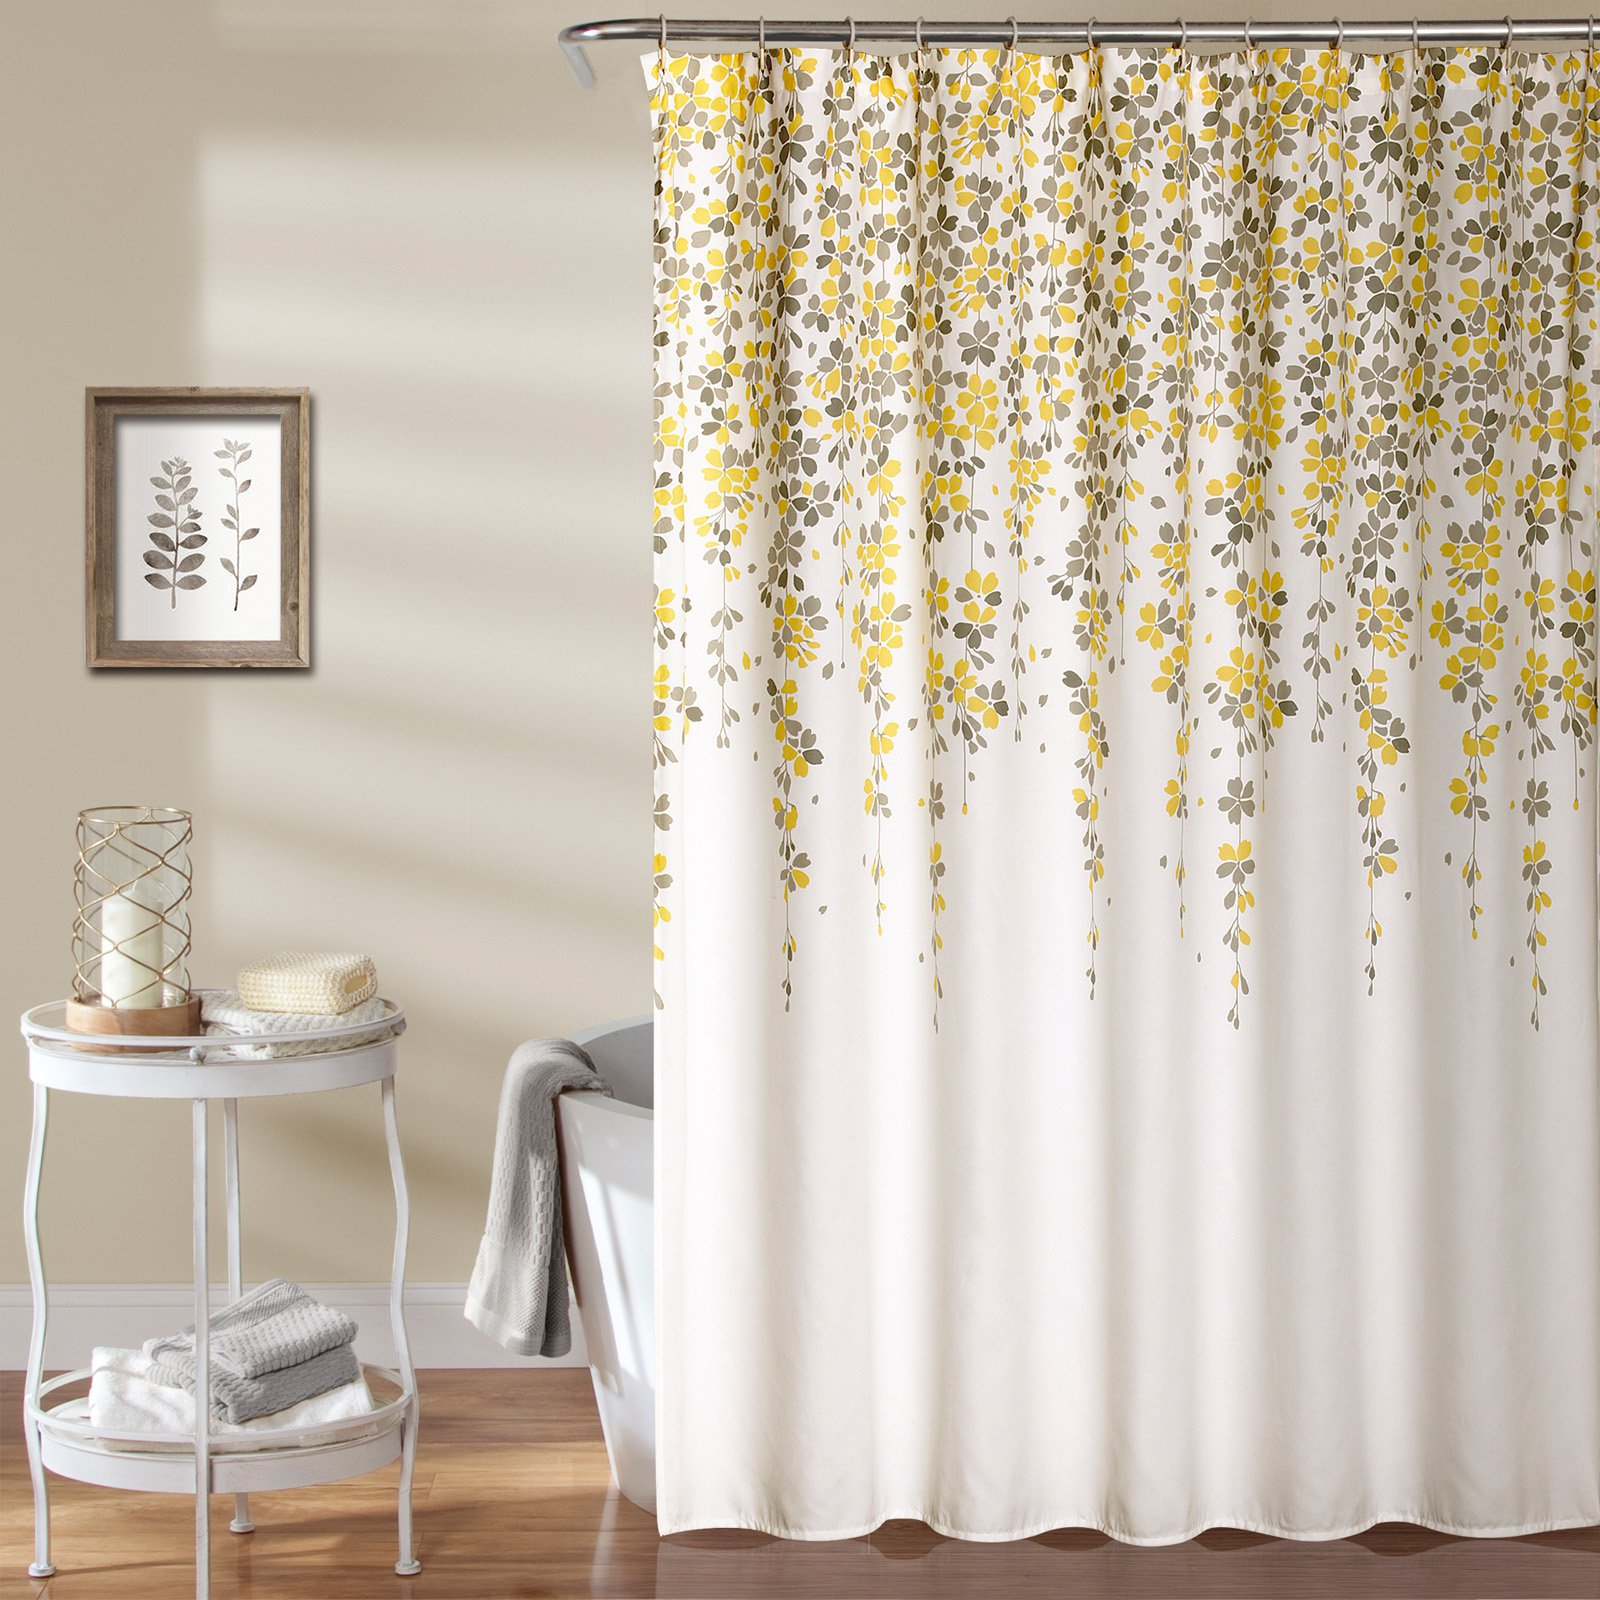 Weeping Flower Shower Curtain Yellow Gray by Generic